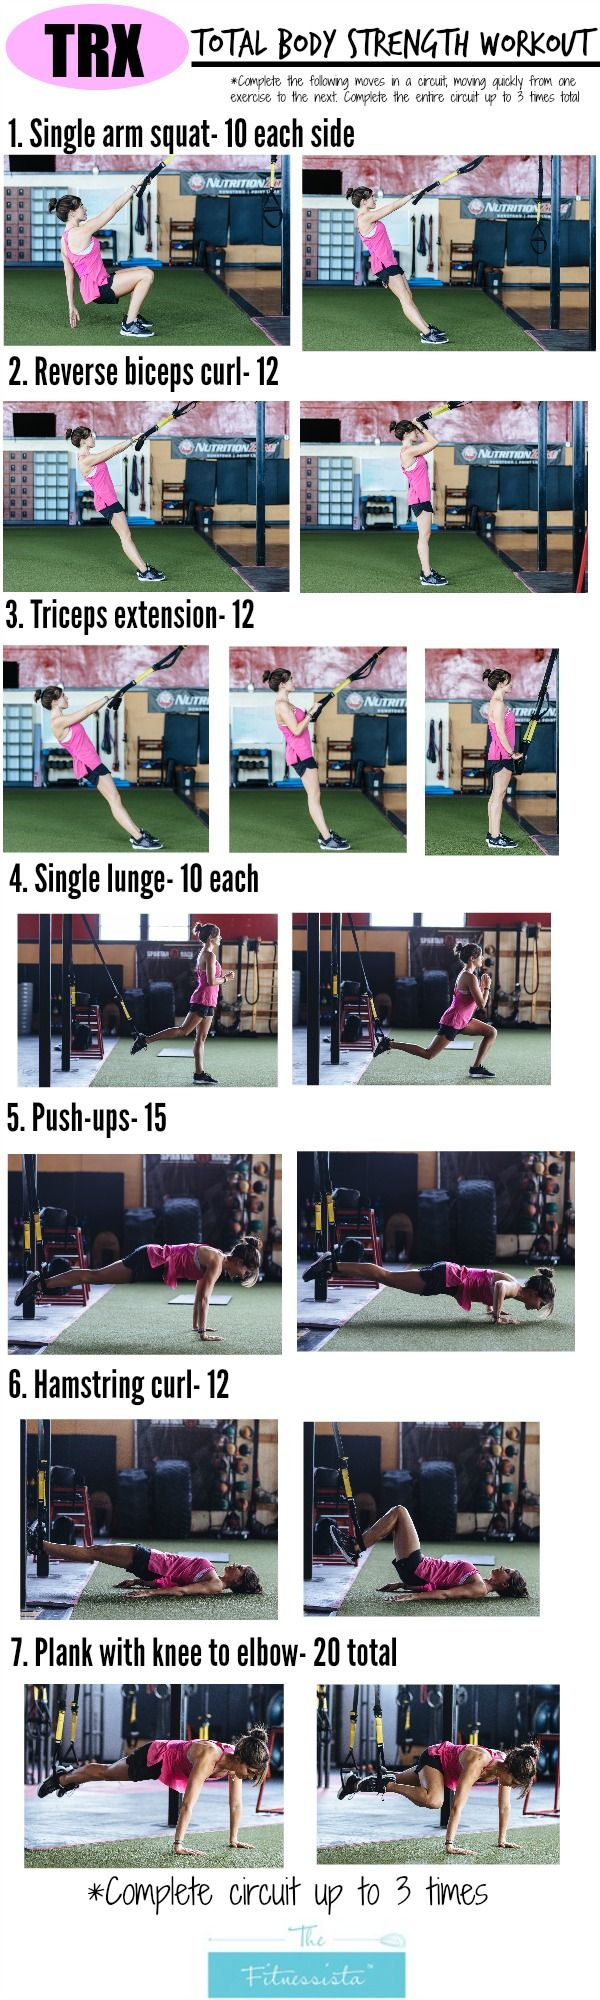 Work Your Entire Body With This TRX Circuit Routine.. Totally in love with TRX!